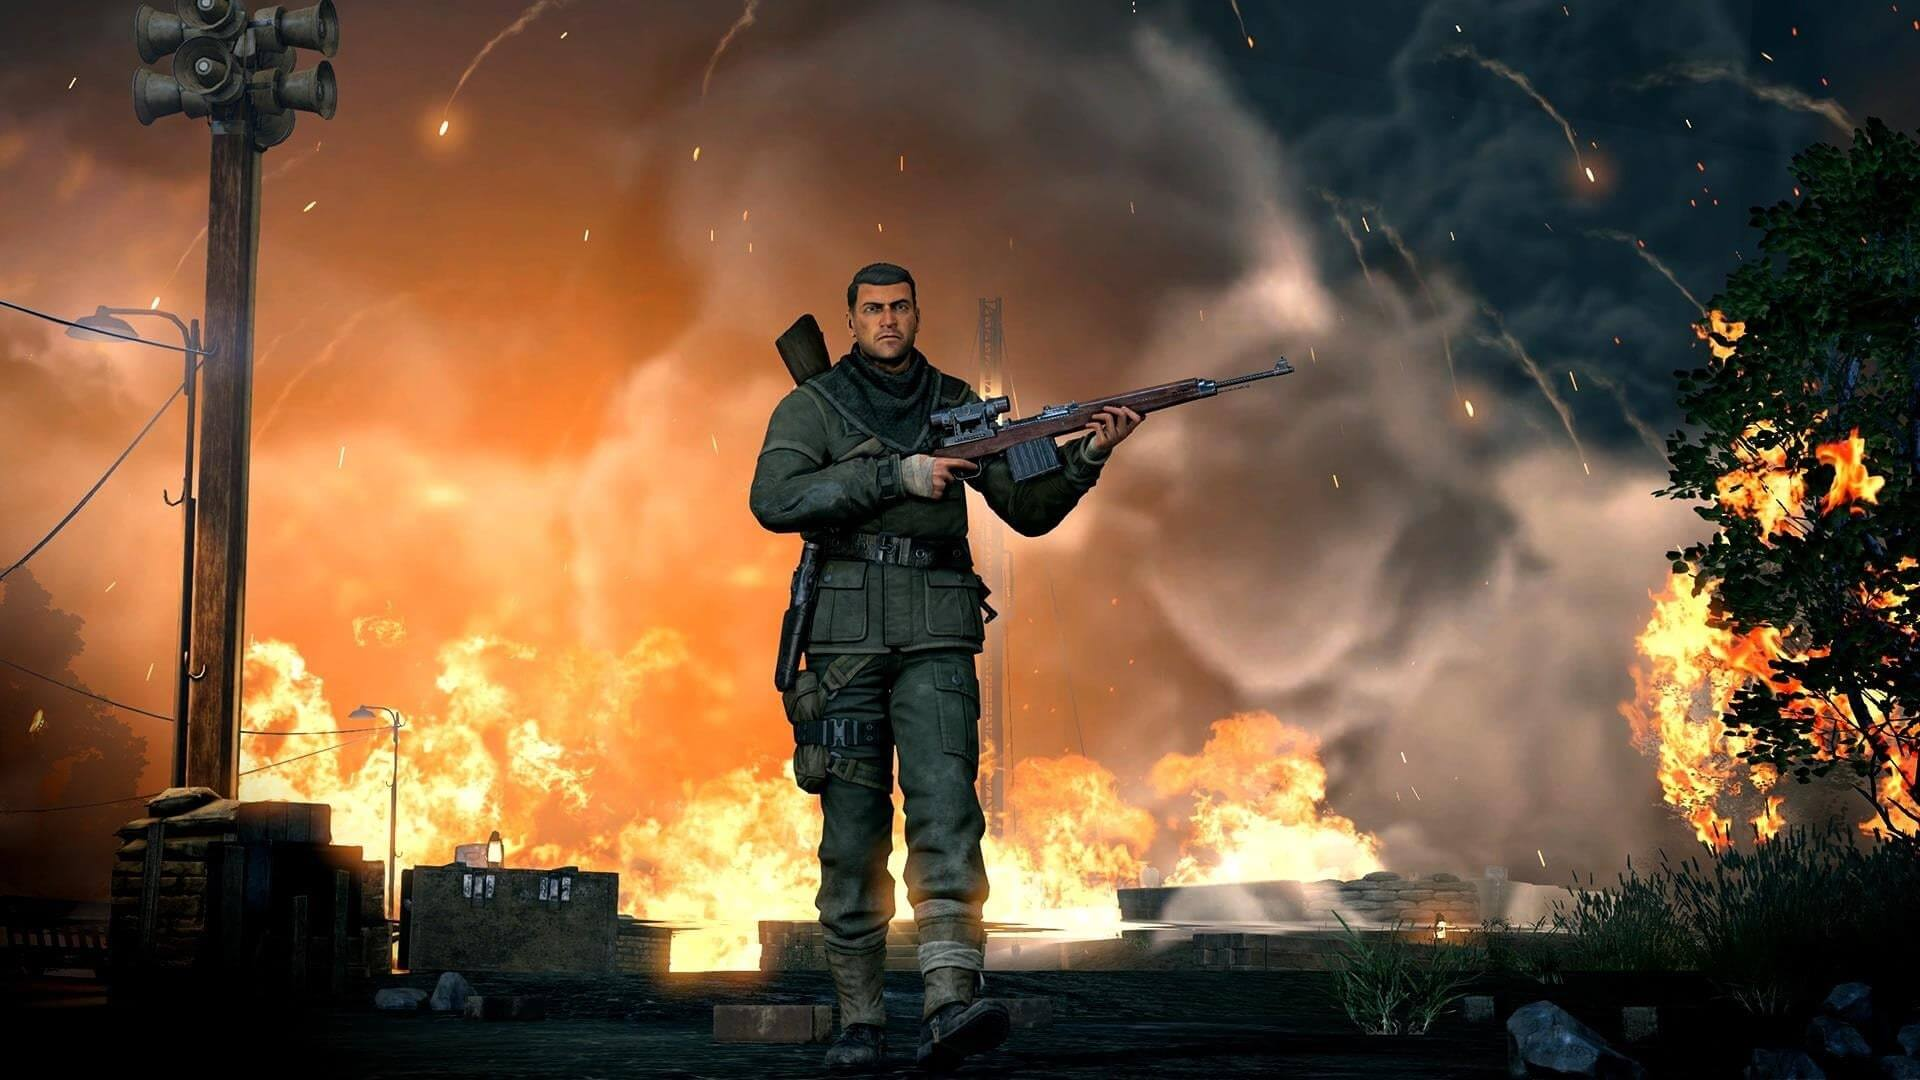 A Ton Of SNIPER ELITE Is On The Way!